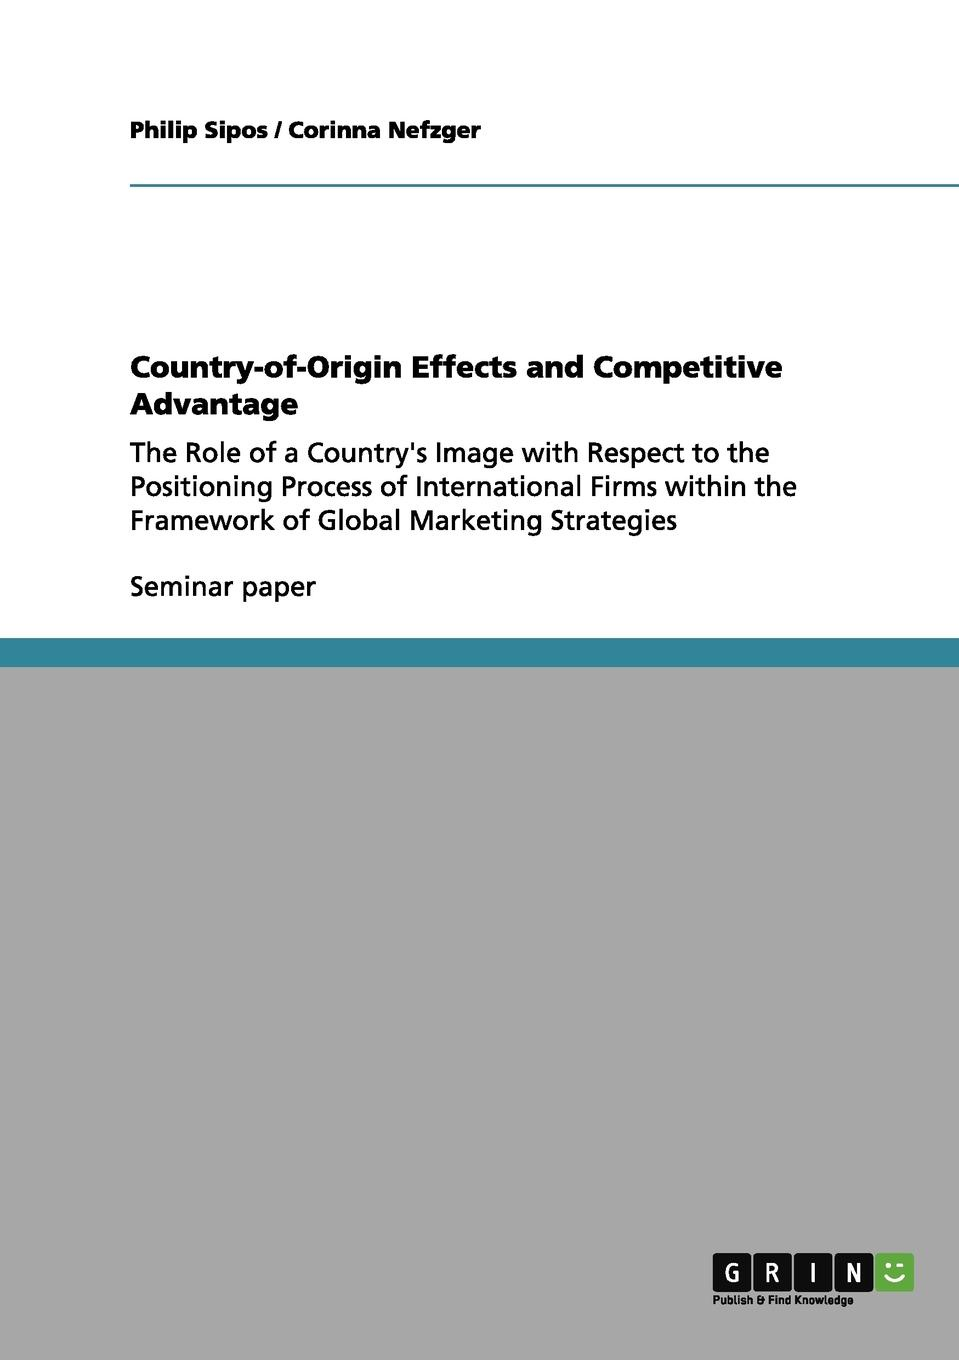 Philip Sipos, Corinna Nefzger Country-of-Origin Effects and Competitive Advantage country of origin knowledge